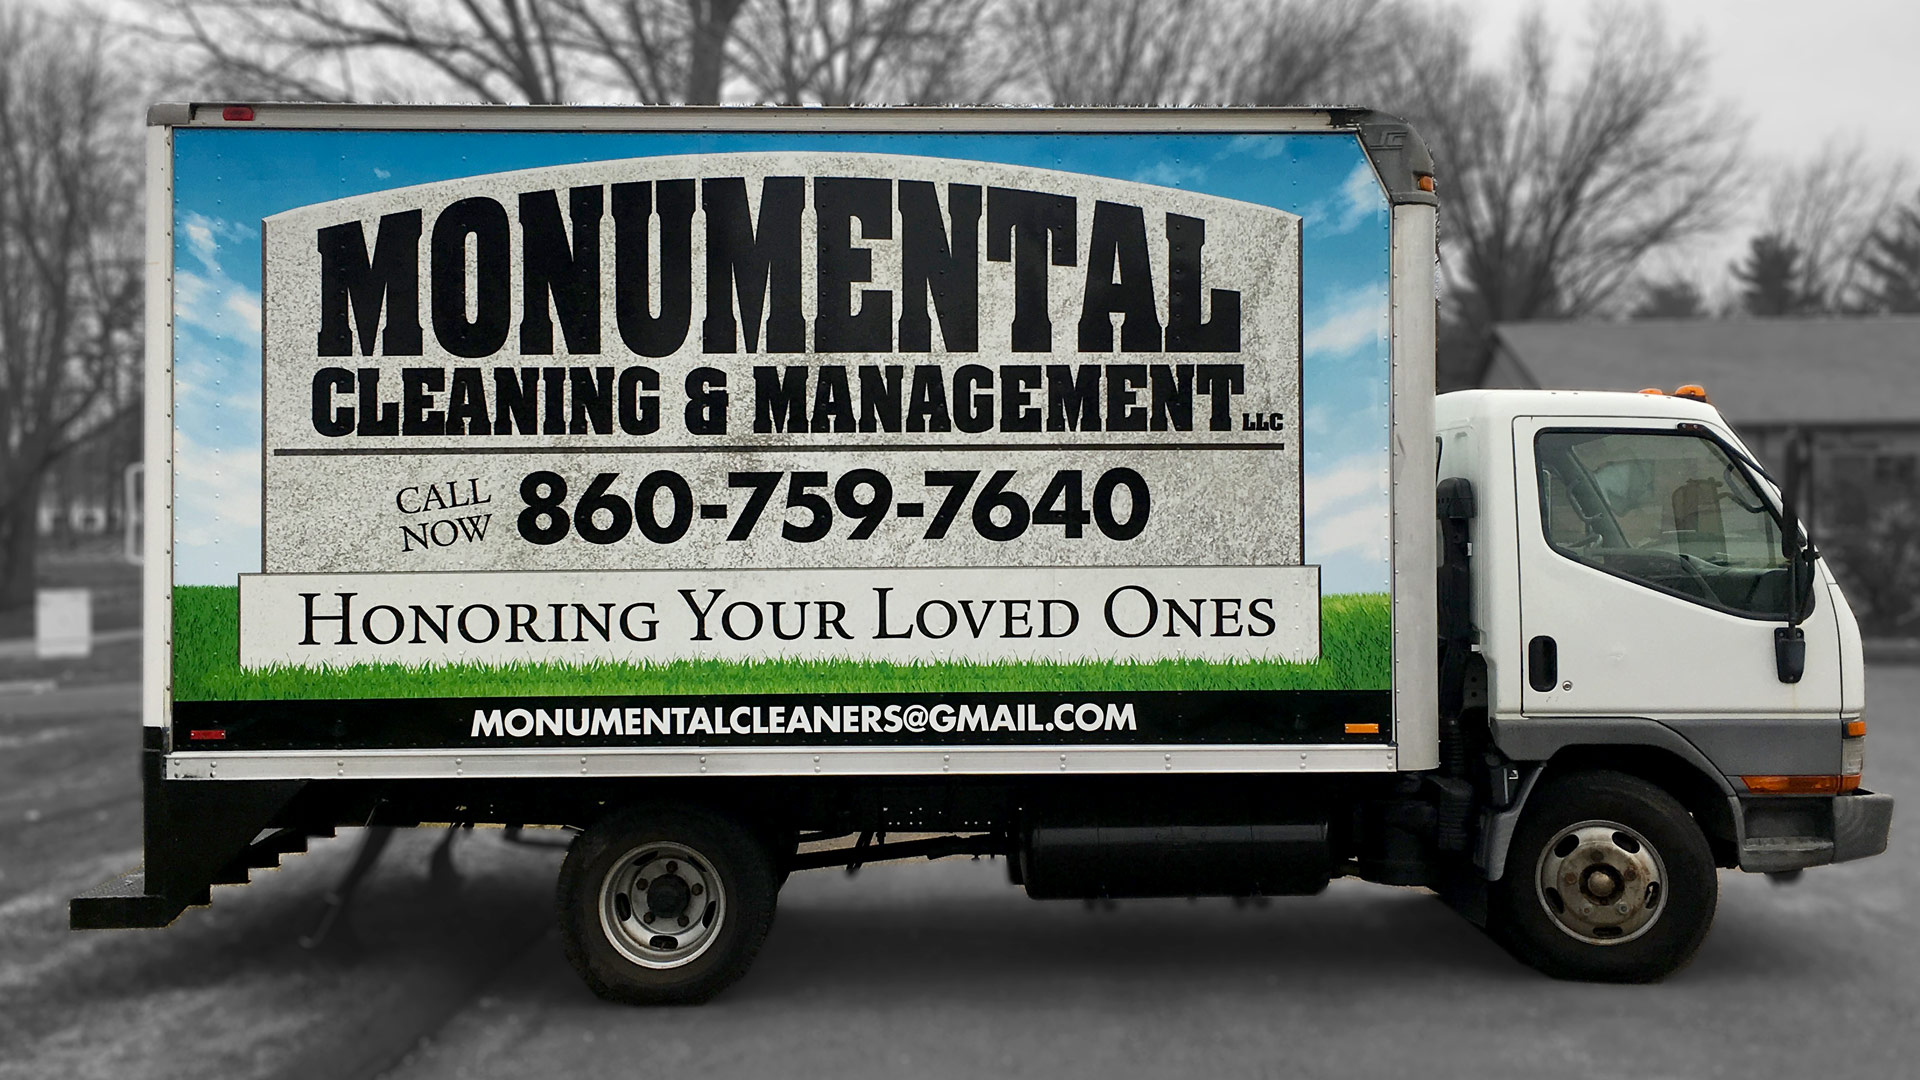 Monumental Cleaning & Management